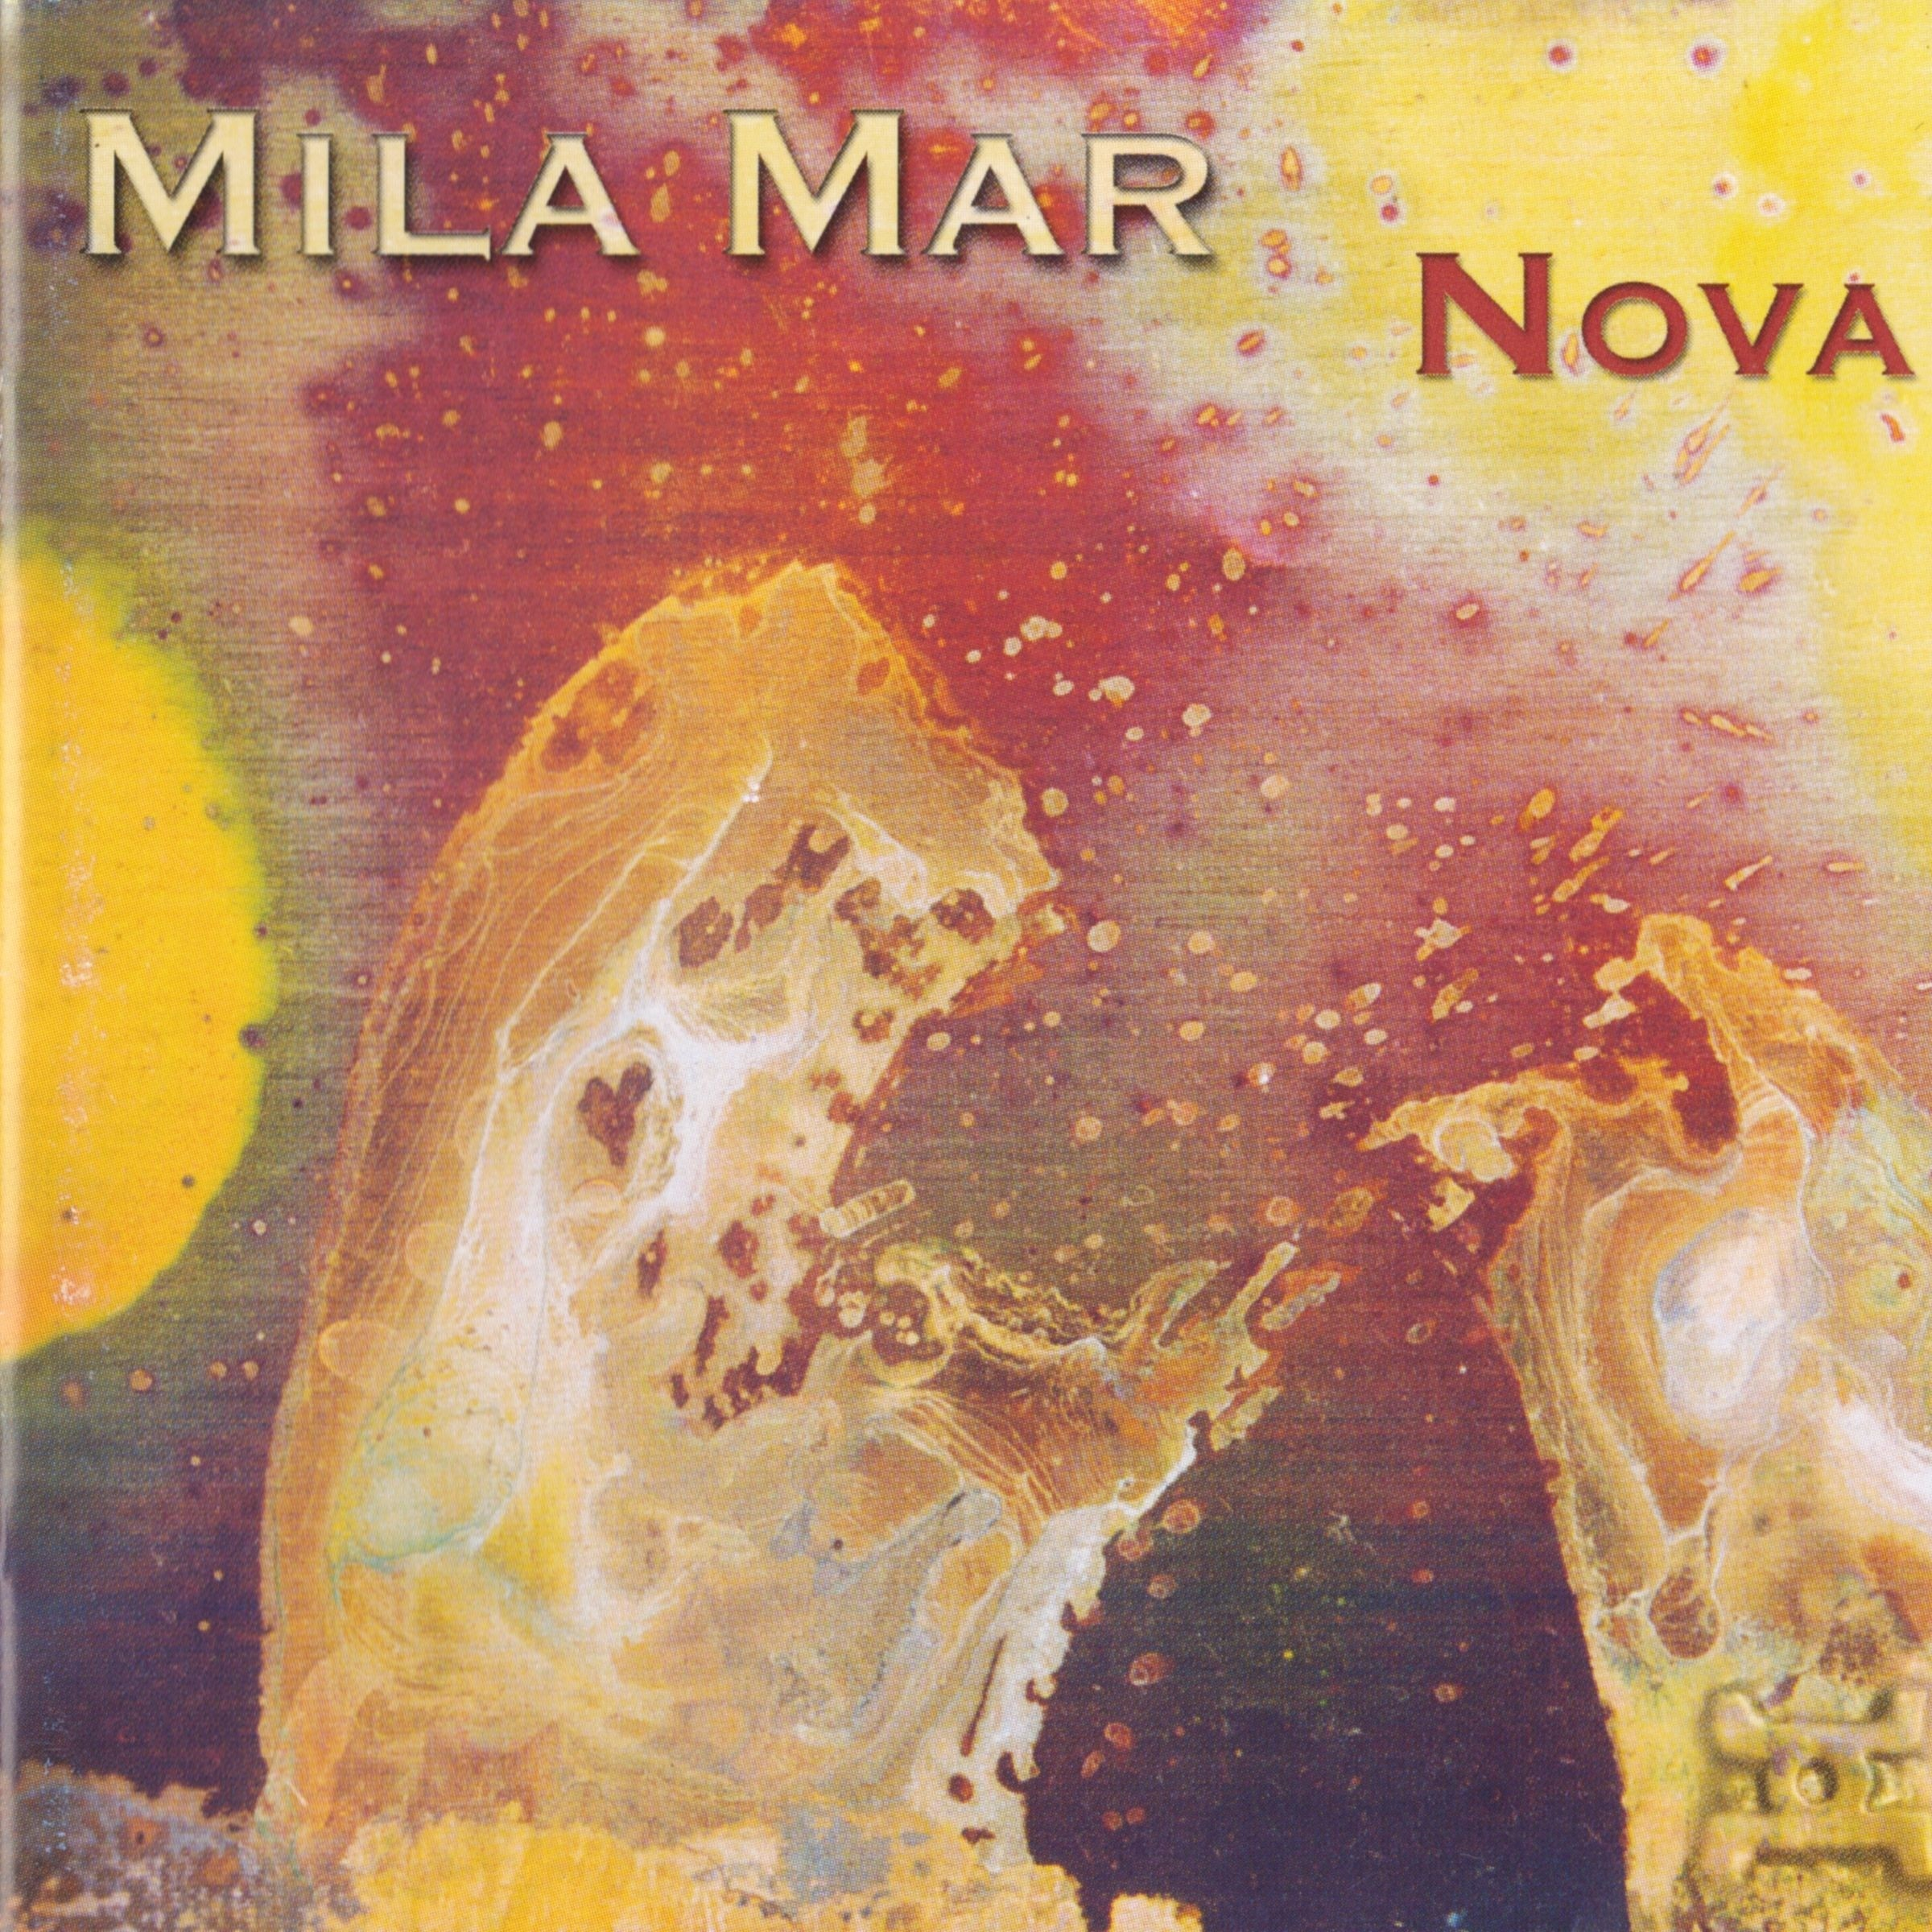 Mila Mar - Nova - LP